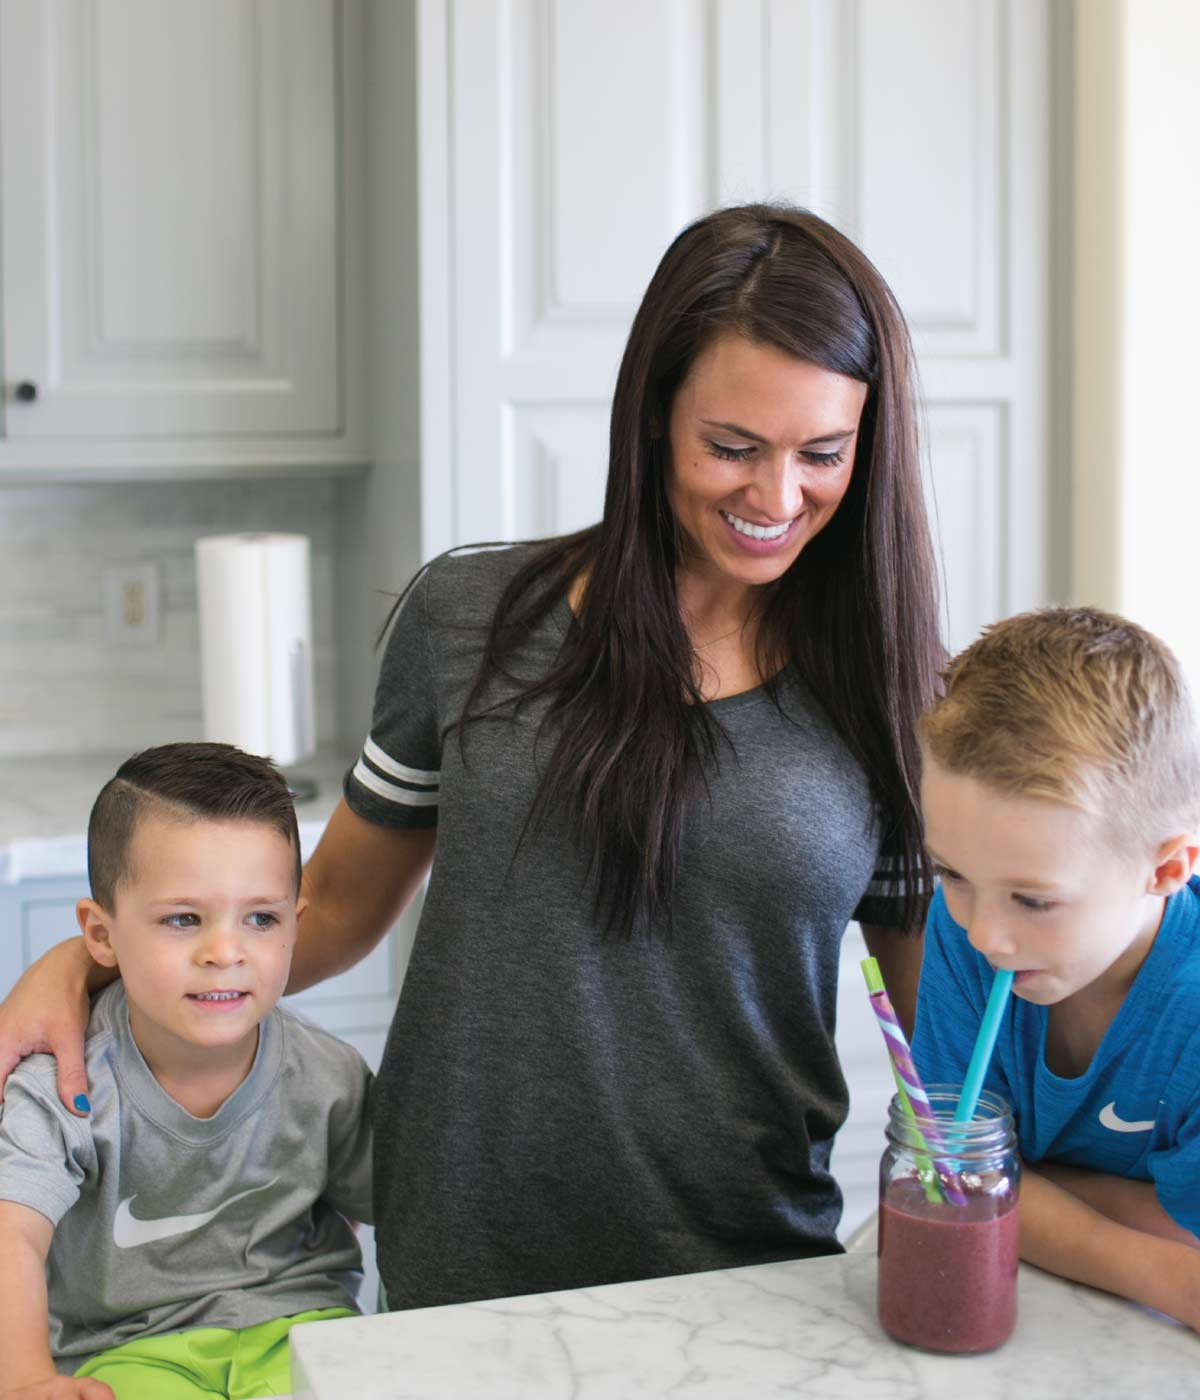 nicole in kitchen w/ kids